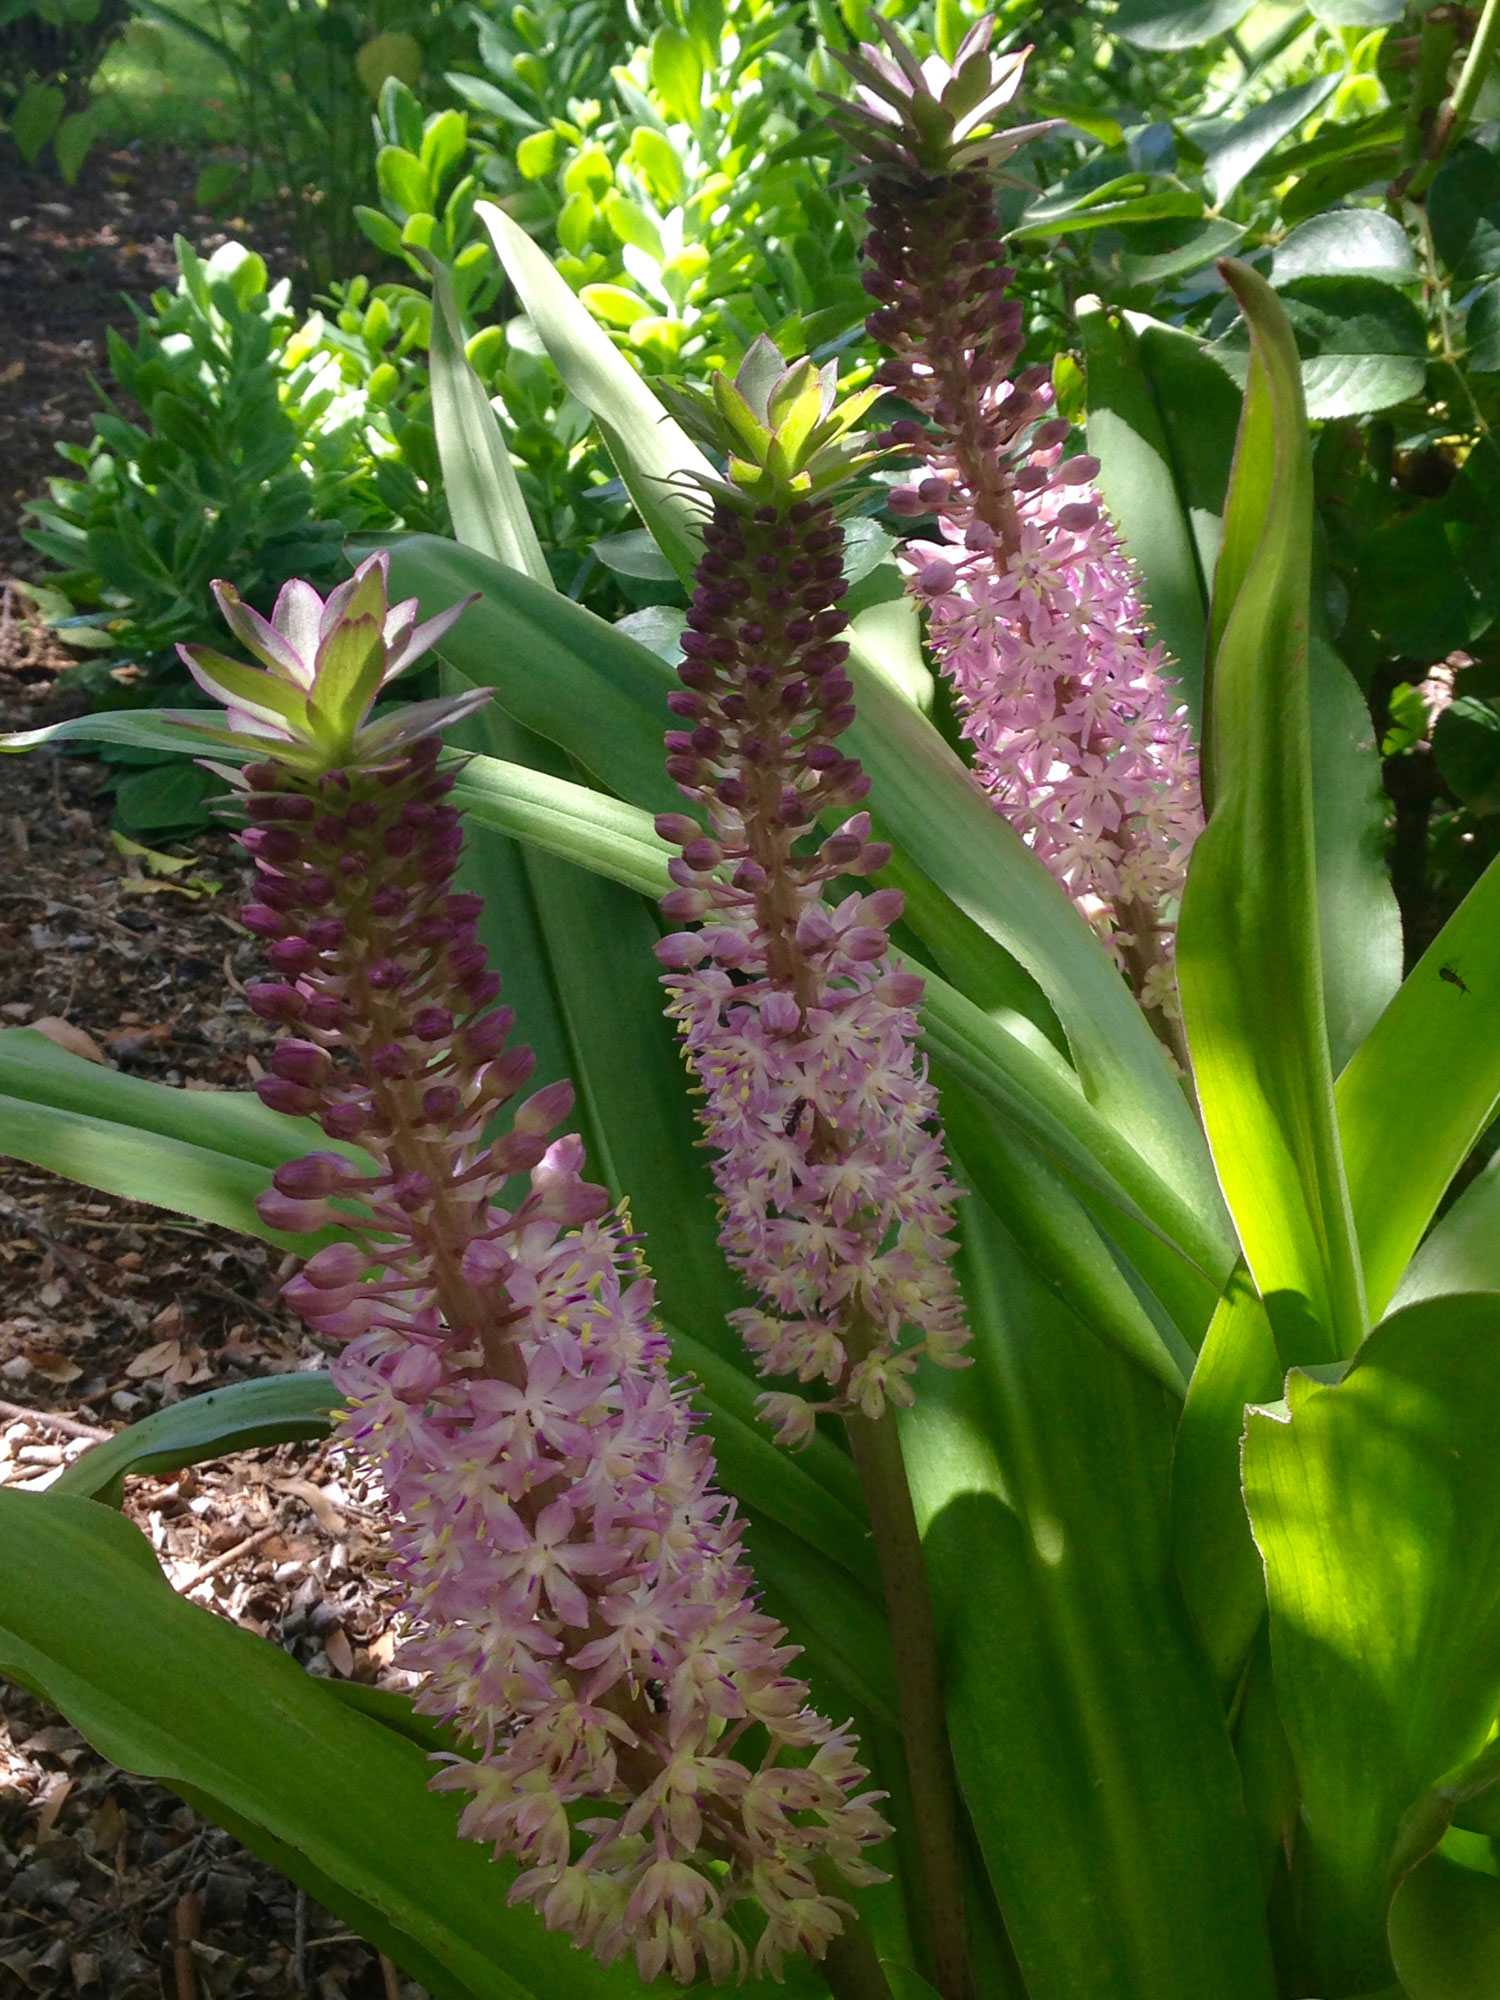 Pineapple lily ( Eucomis comosa  'Sparking Burgundy')